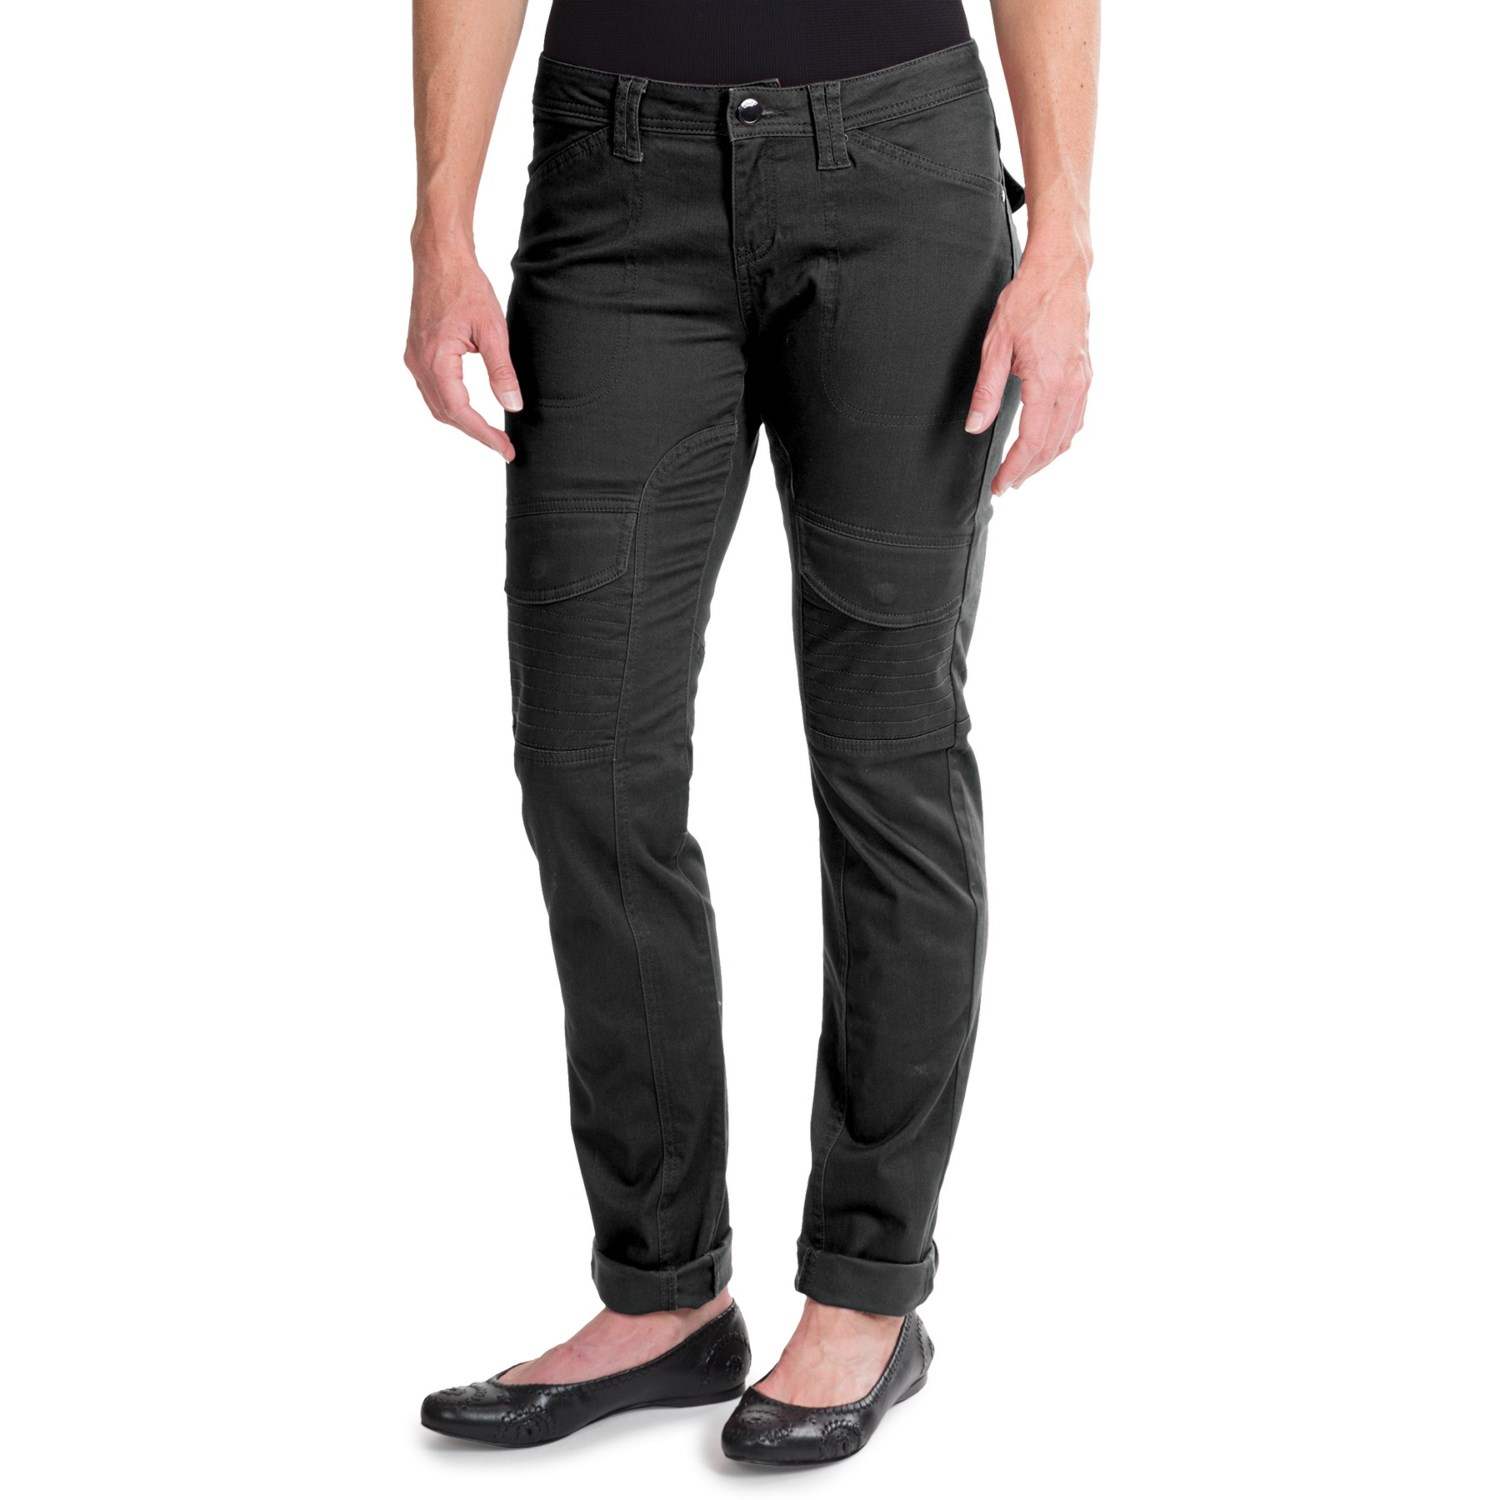 Popular Flat Front Cargo Pant Is A Blended Twill With A Soft Hand The Deep Cargo Pockets With Velcro&174 Closure Lets You Store Most Anything This Pant Is Loaded With Performance Features Including Soil Release And Moisture Wicking 65%